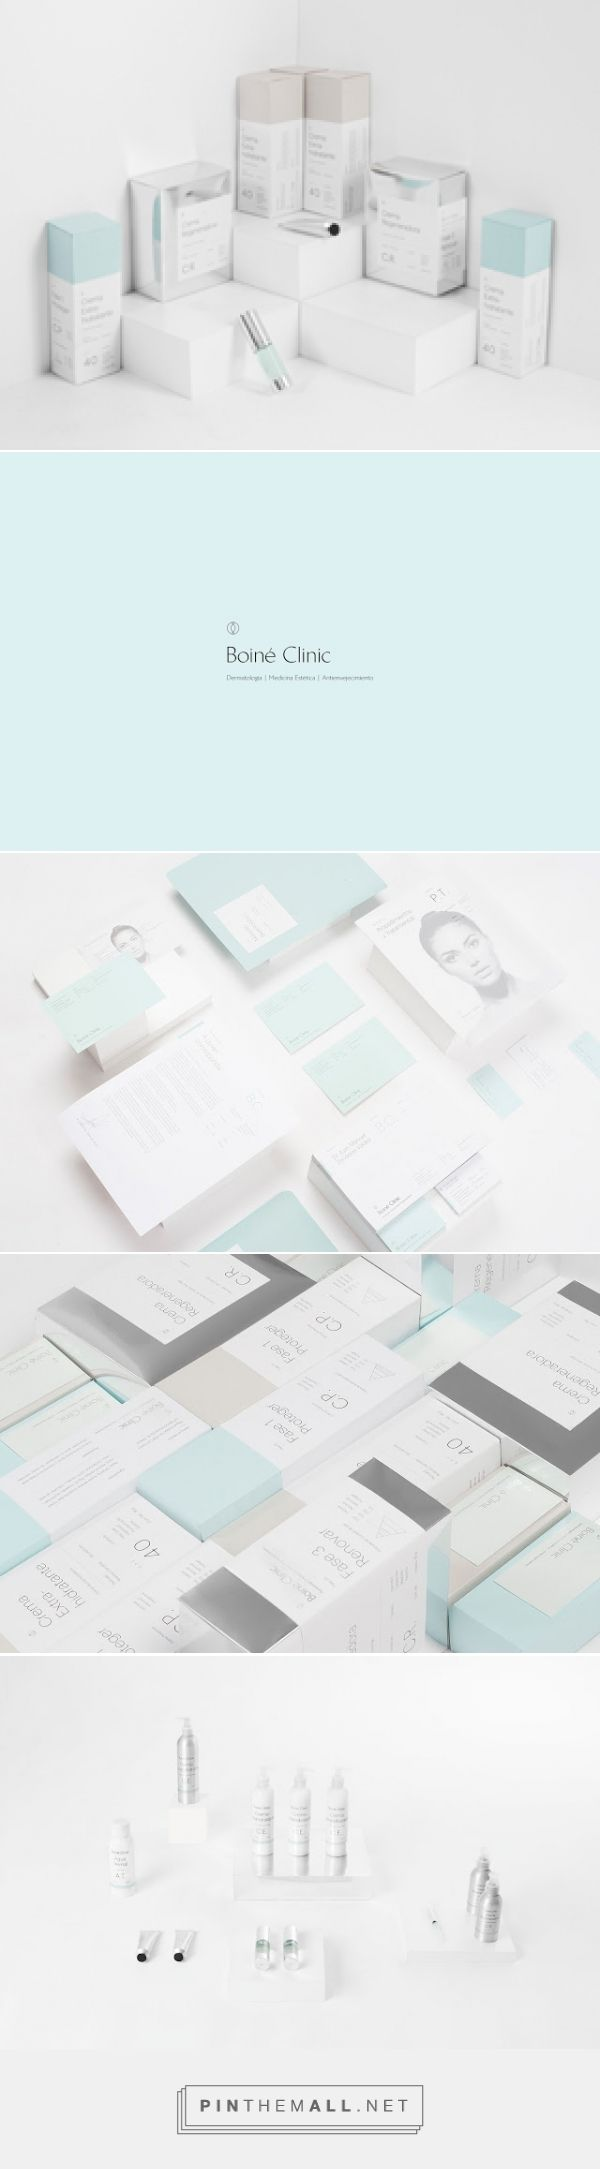 Boine Clinic on Packaging of the World - Creative Package Design Gallery - created via http://pinthemall.net